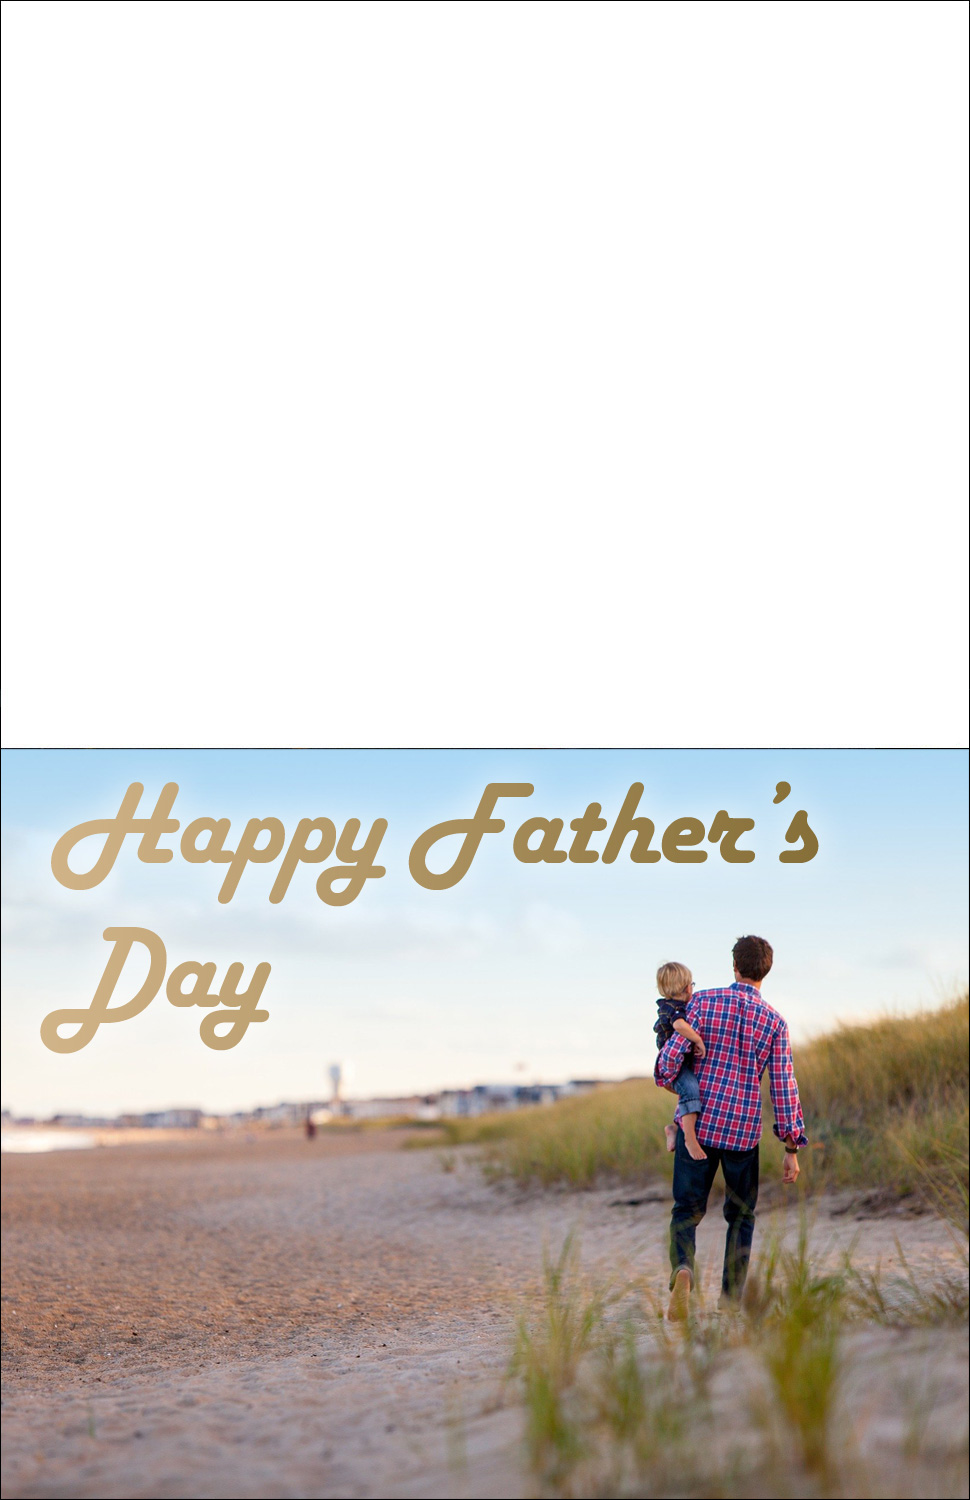 Printable card to say Happy Father's Day, showing a father walking along a beach carrying his child.